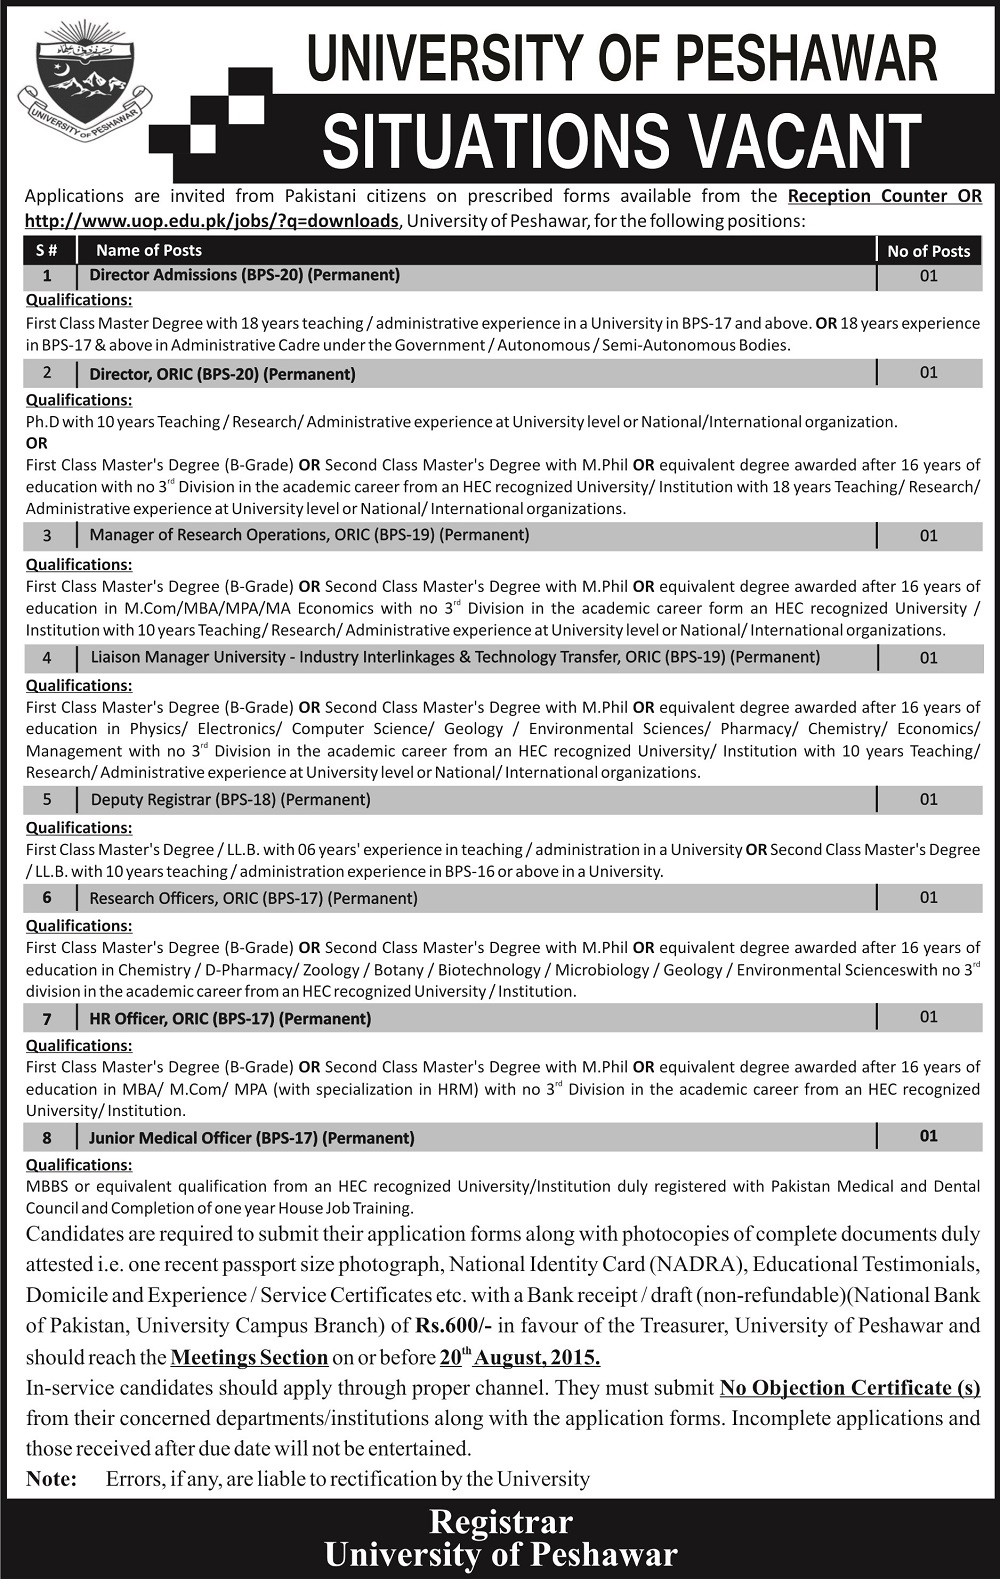 Jobs 2015 | University of Peshawar